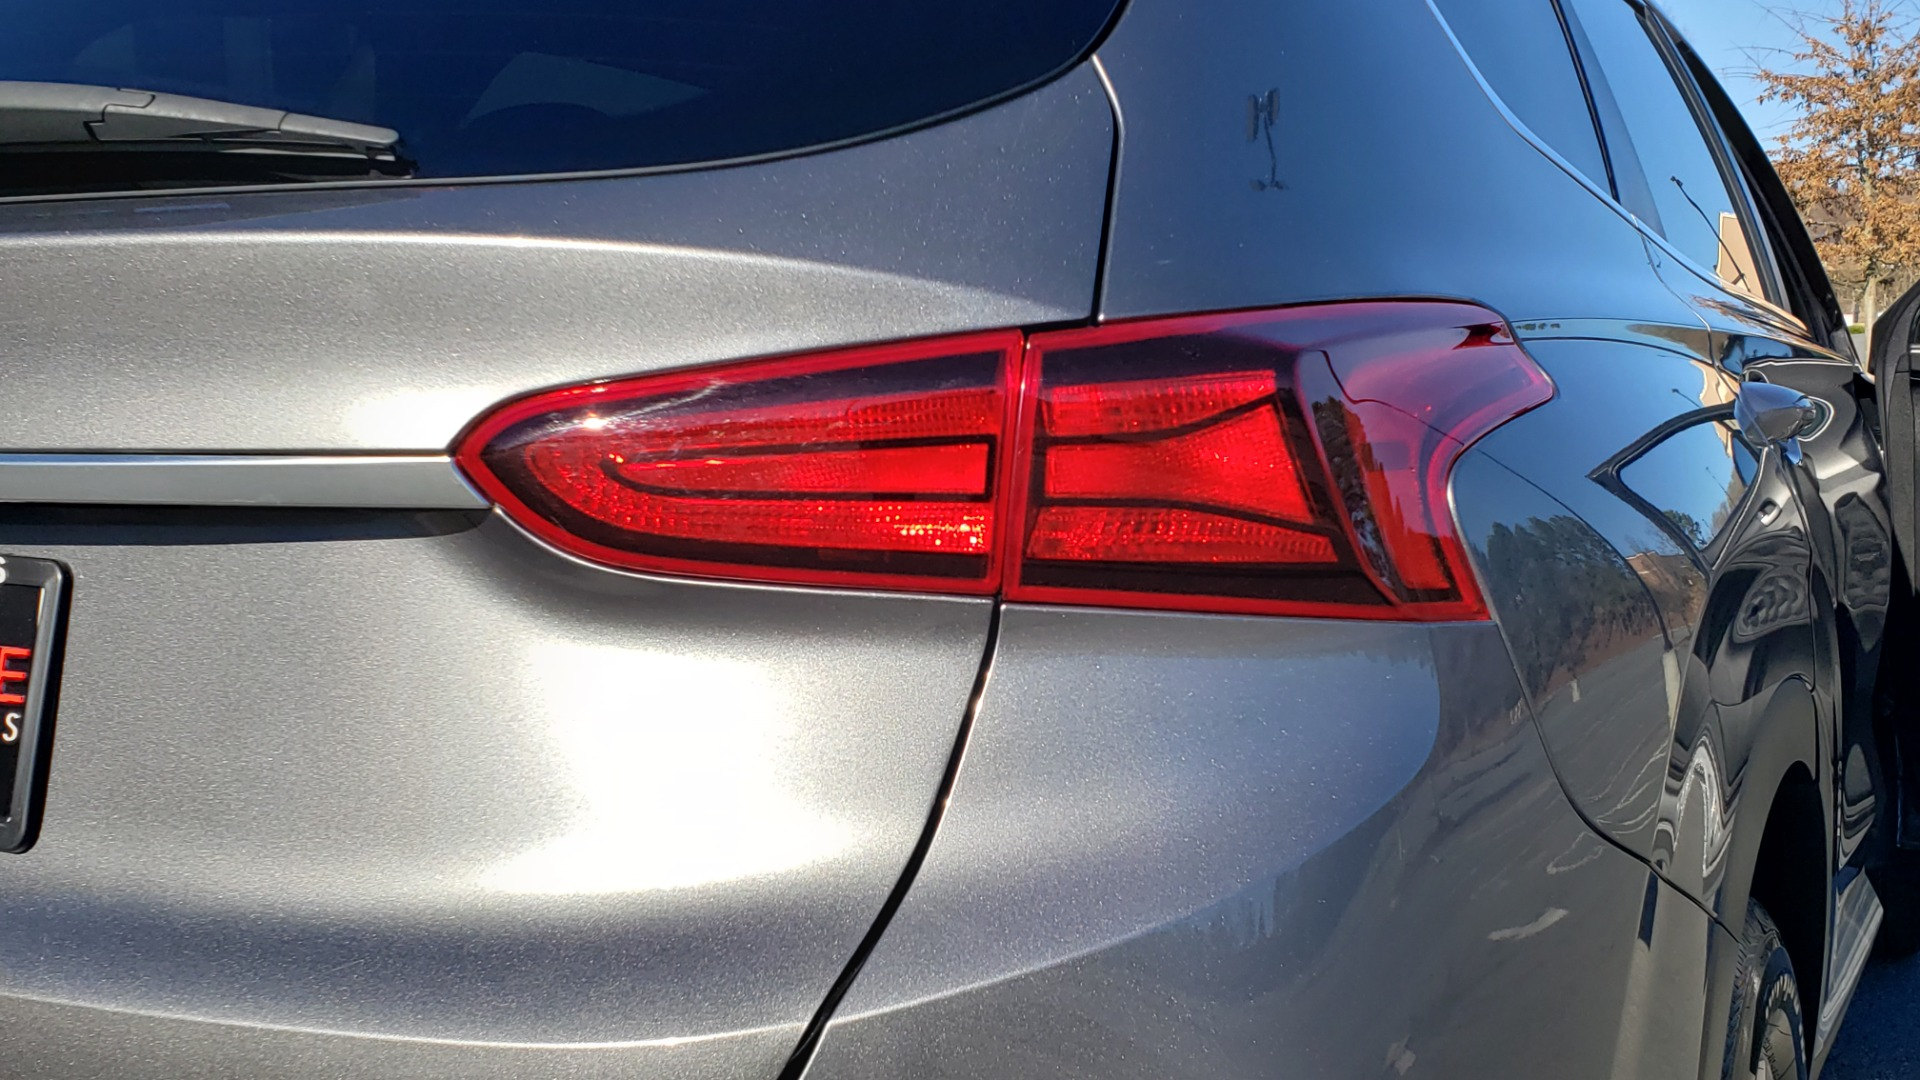 Used 2019 Hyundai SANTA FE SE / 2.4L 4-CYL / 8-SPD AUTO / BLIND SPOT / LANE KEEP ASSIST for sale Sold at Formula Imports in Charlotte NC 28227 33